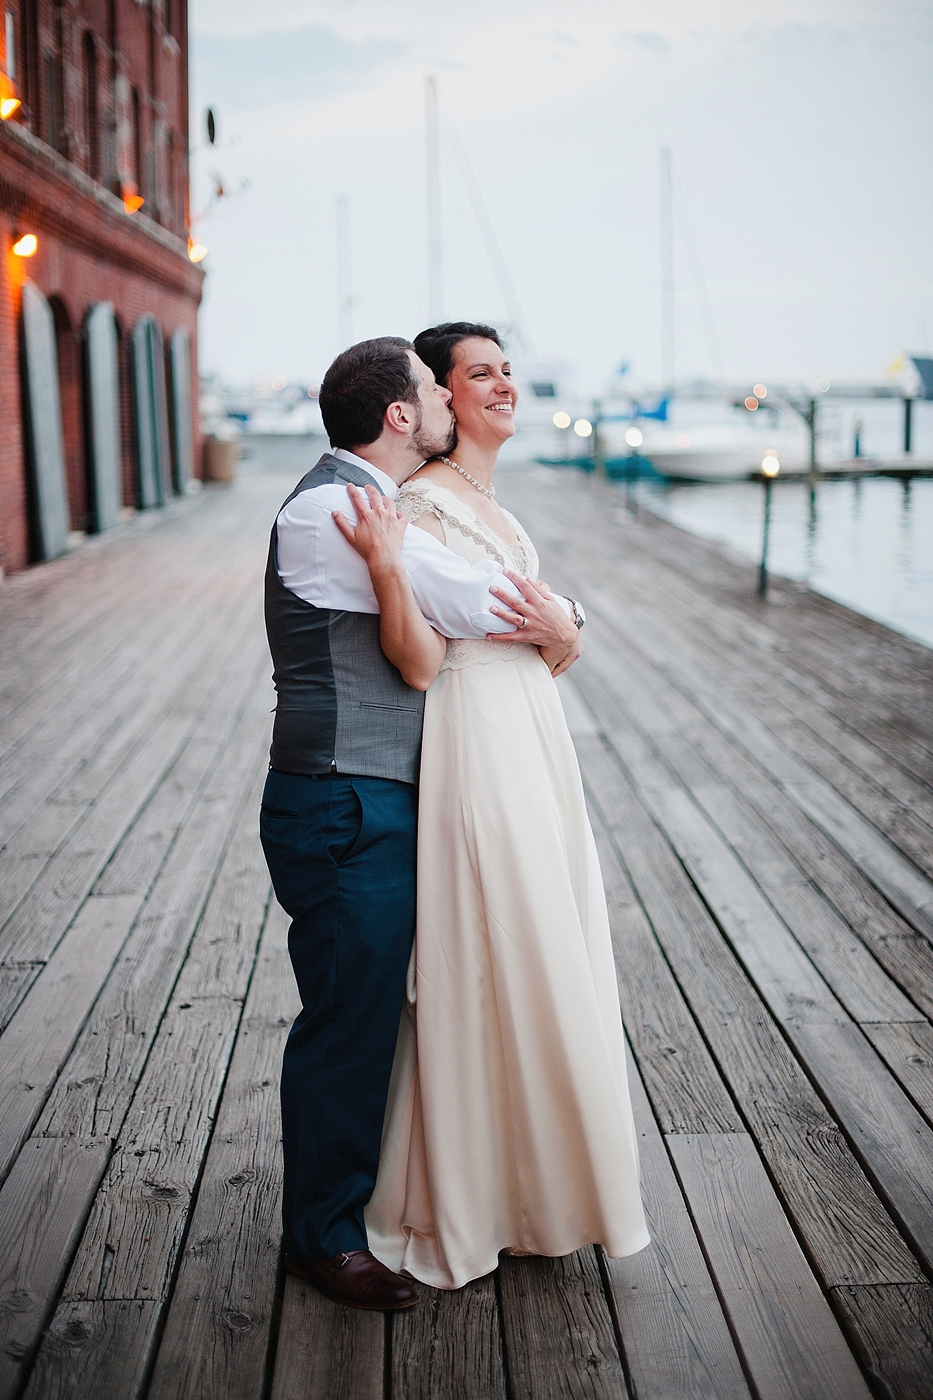 Inn at hendersons wharf wedding sunset portraits